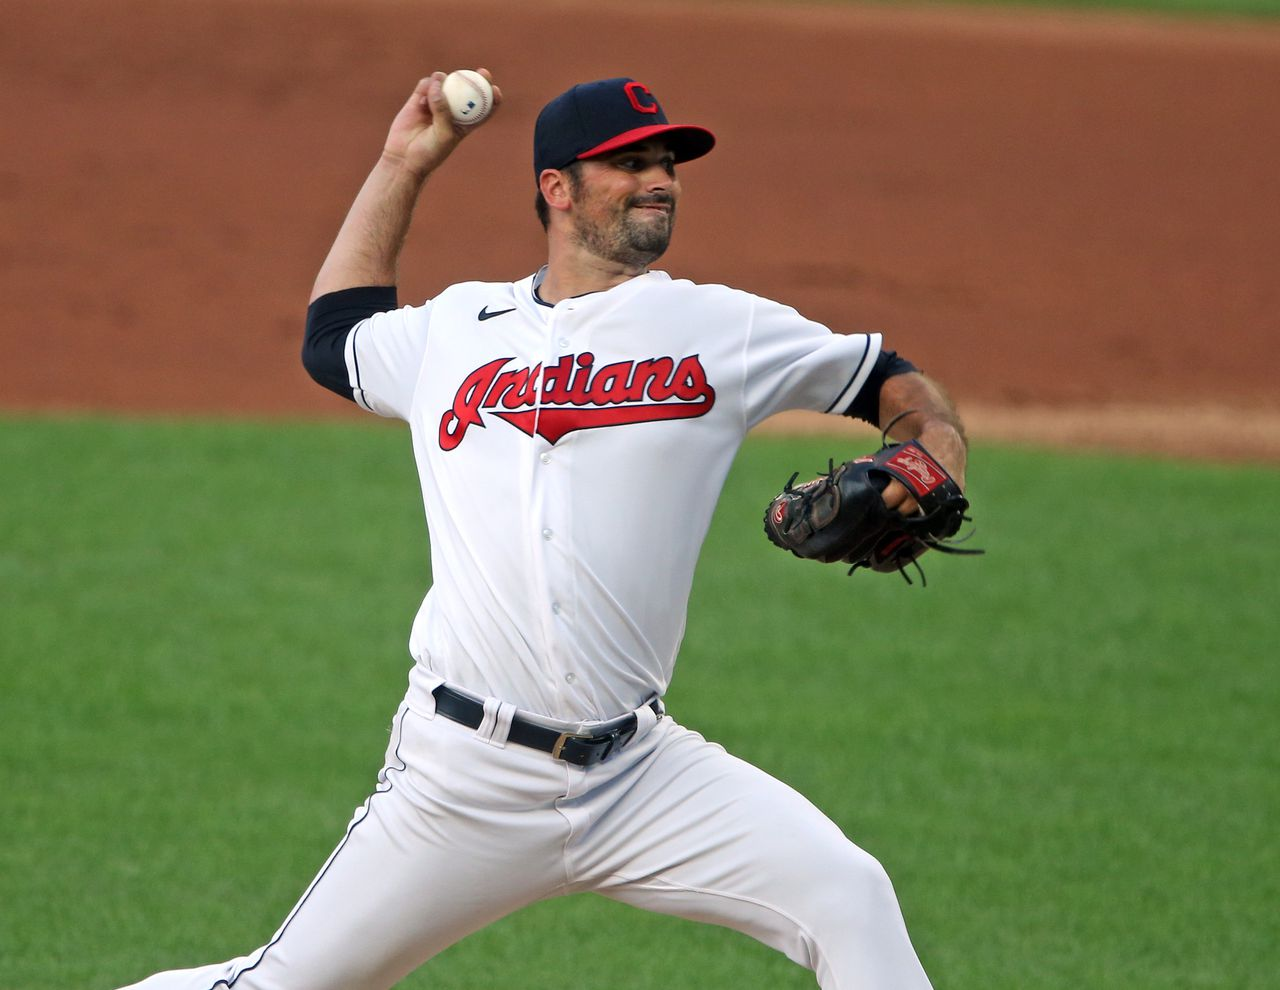 Cleveland Indians comprehensive doubleheader sweep of Chicago White Sox with 5-3 gain